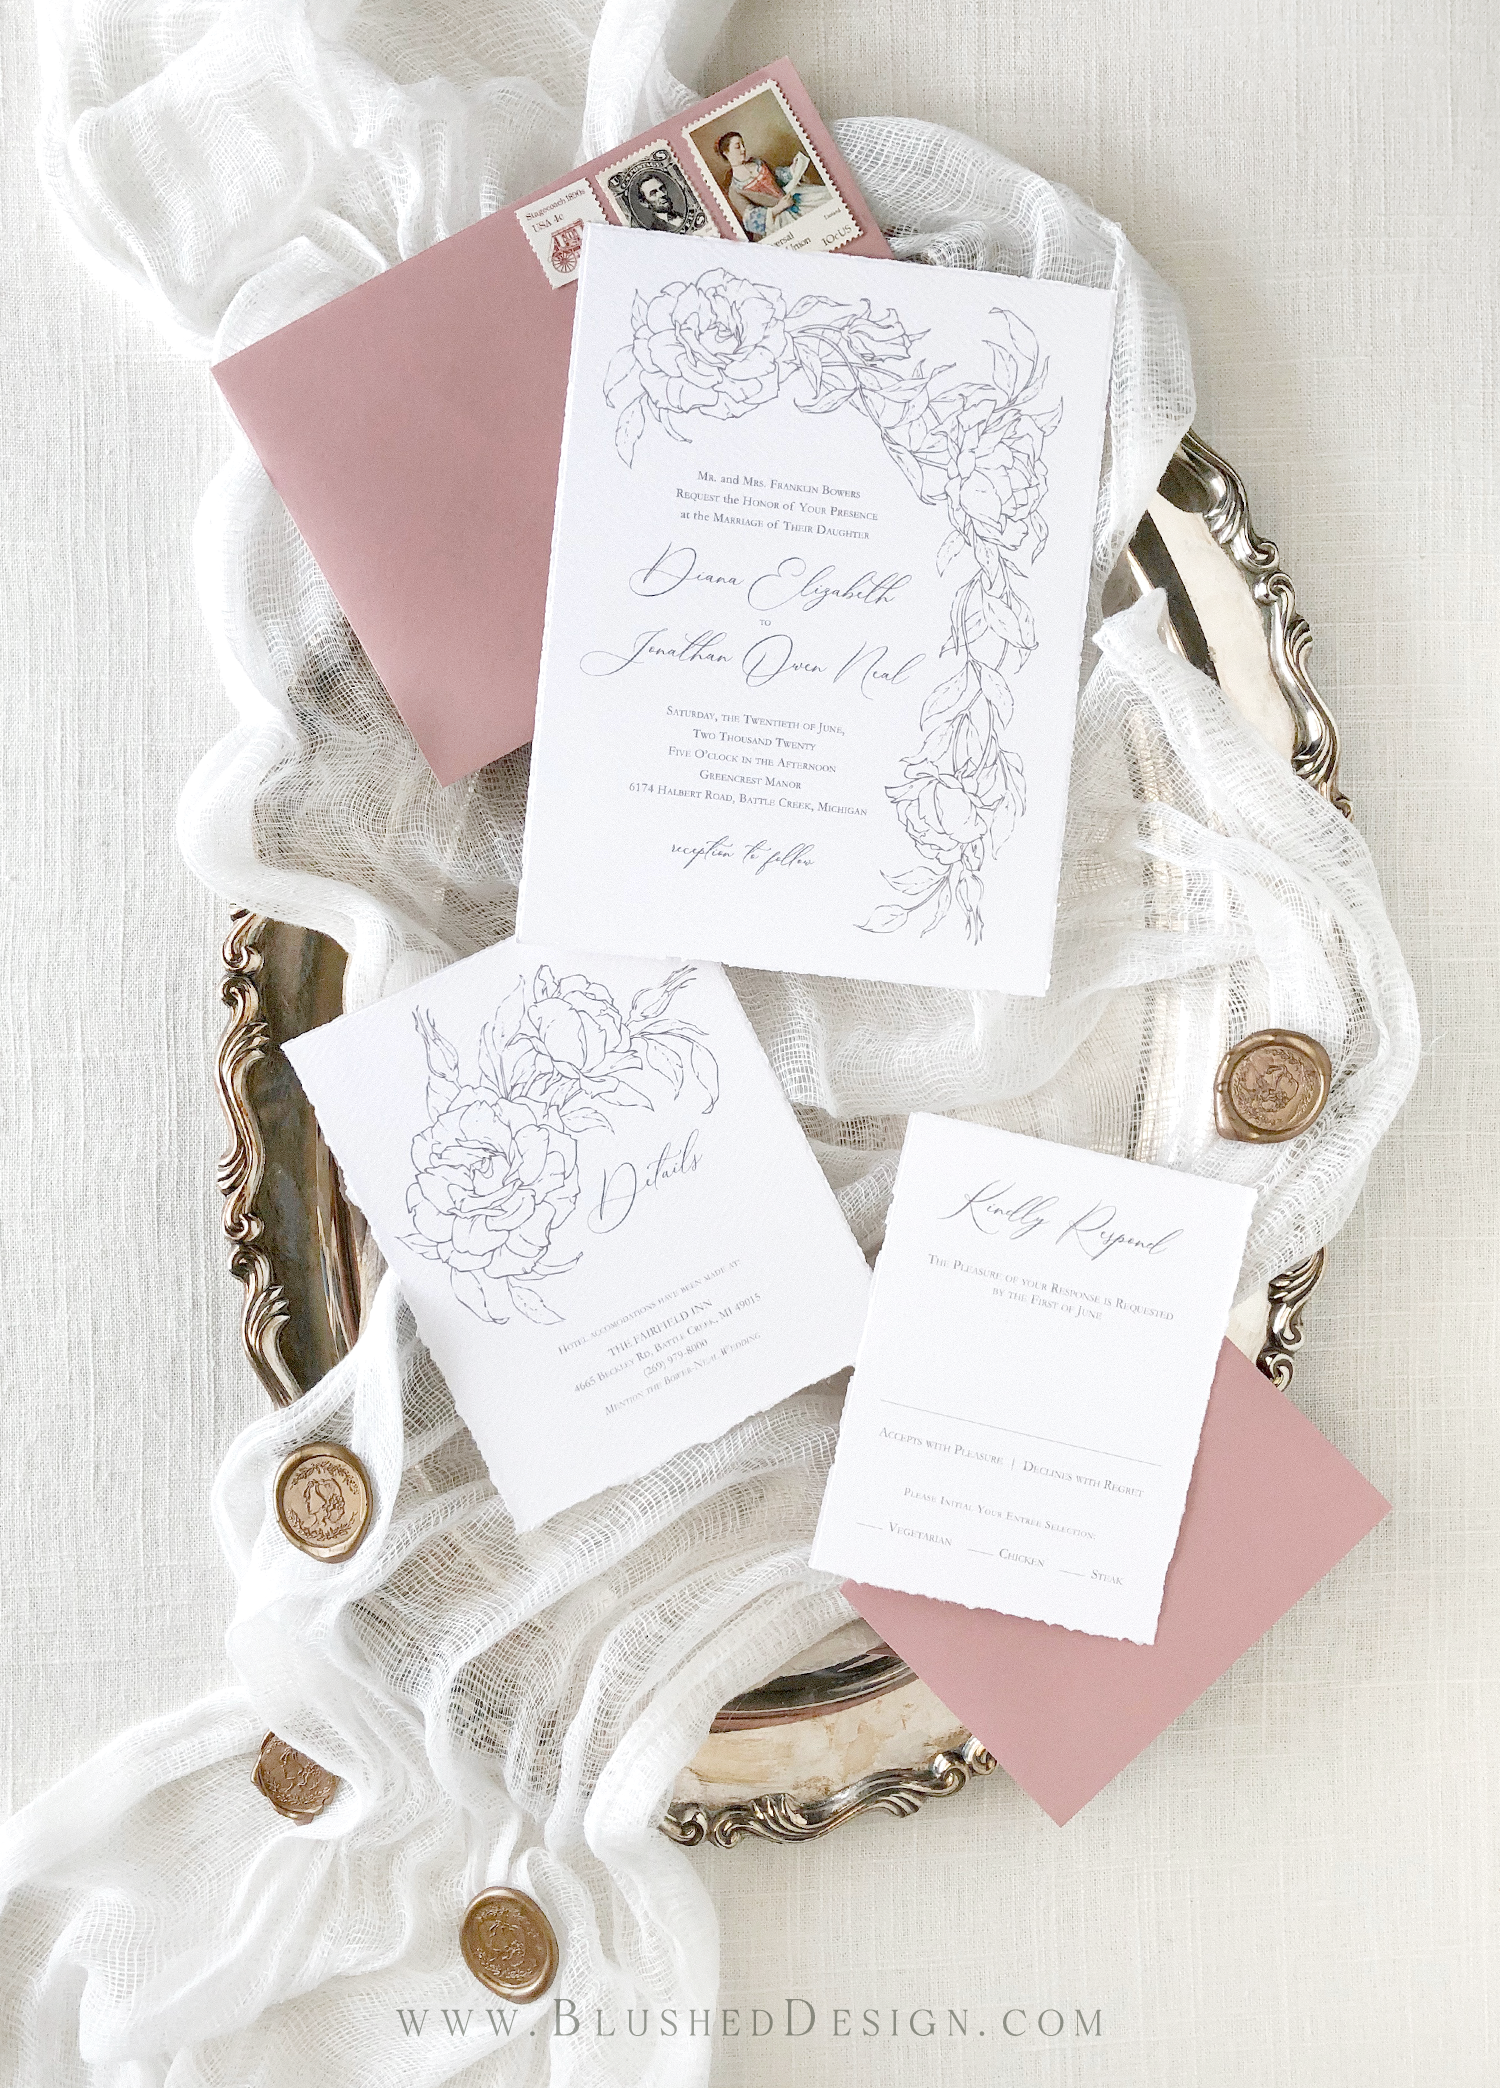 Elegant wedding invitations with a soft botanical illustration and elegant calligraphy.  Fine art wedding invitations by Blushed Design from the Editorial Collection—romantic and elegant wedding invitations for the fine art bride #fineartwedding #blushedDesign #romanticwedding #elegantweddinginvitations